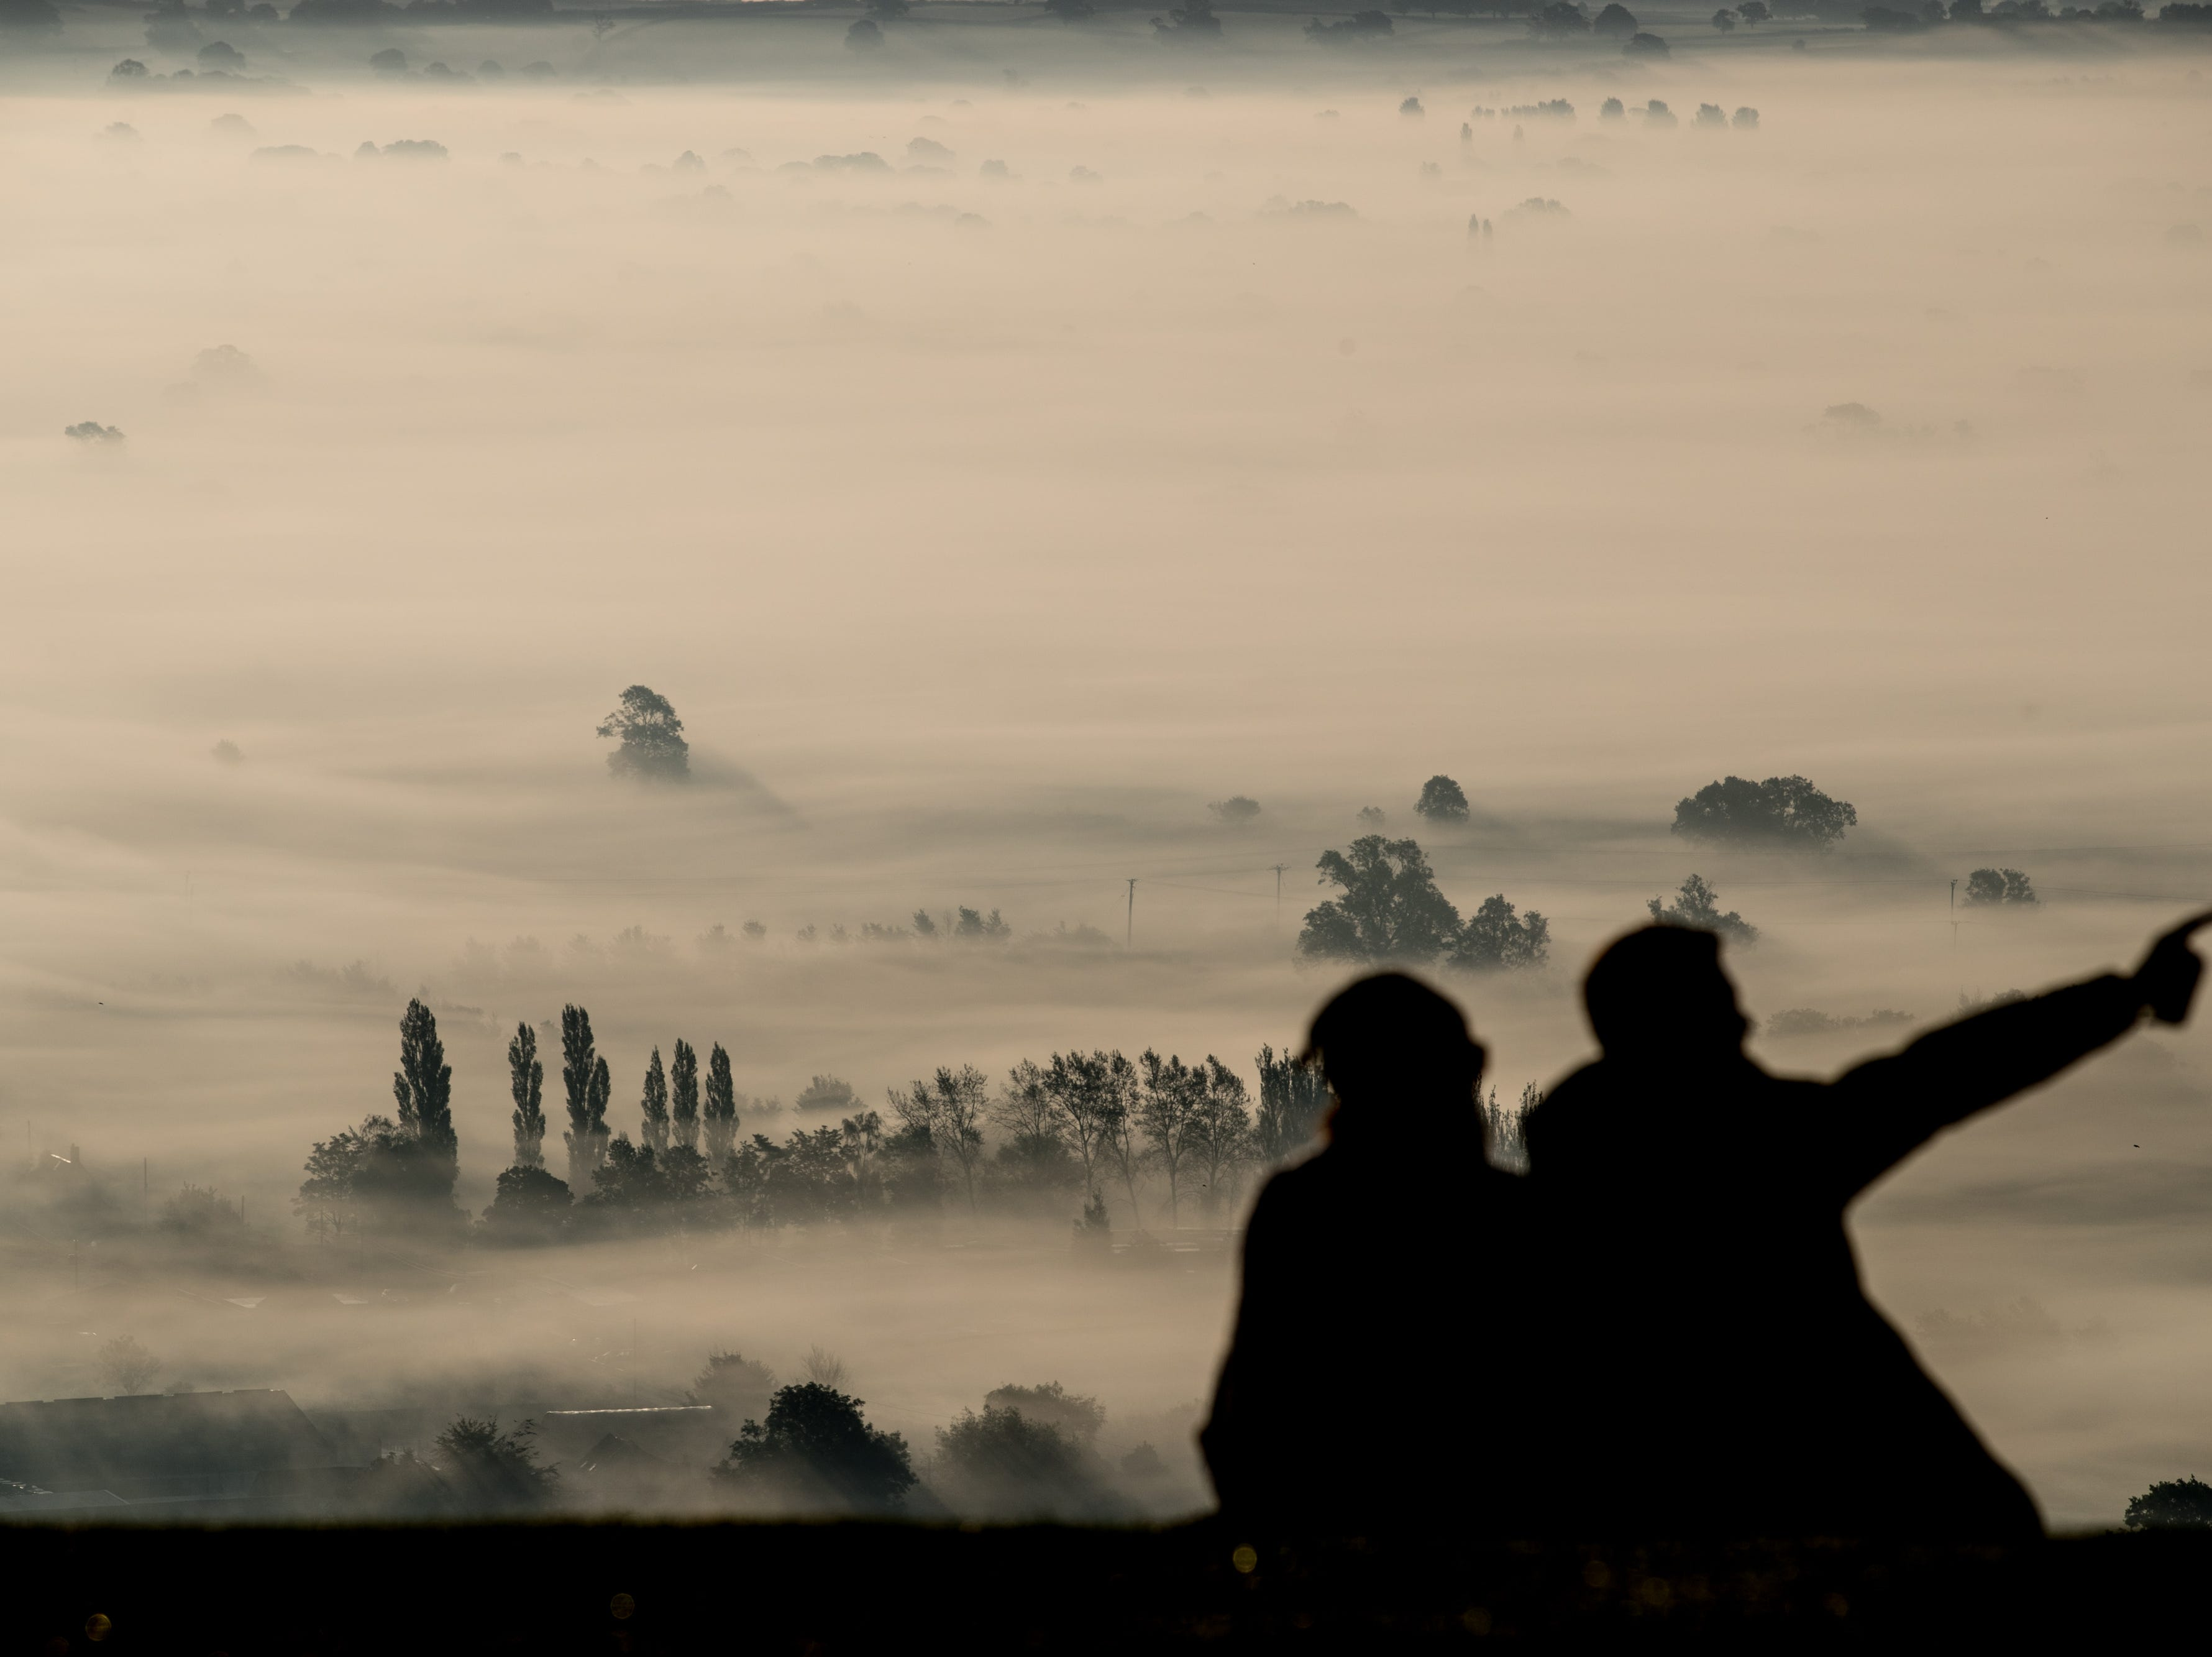 Early morning mist lingers as the sun rises  in Glastonbury on September 27, 2018, in Somerset, England. After the hottest summer on record, weather forecasters are predicting that today could be the last warm day of the year for some parts of the UK, with temperatures expected to reach 75F (24C) in the South East this afternoon, unlikely to be repeated.